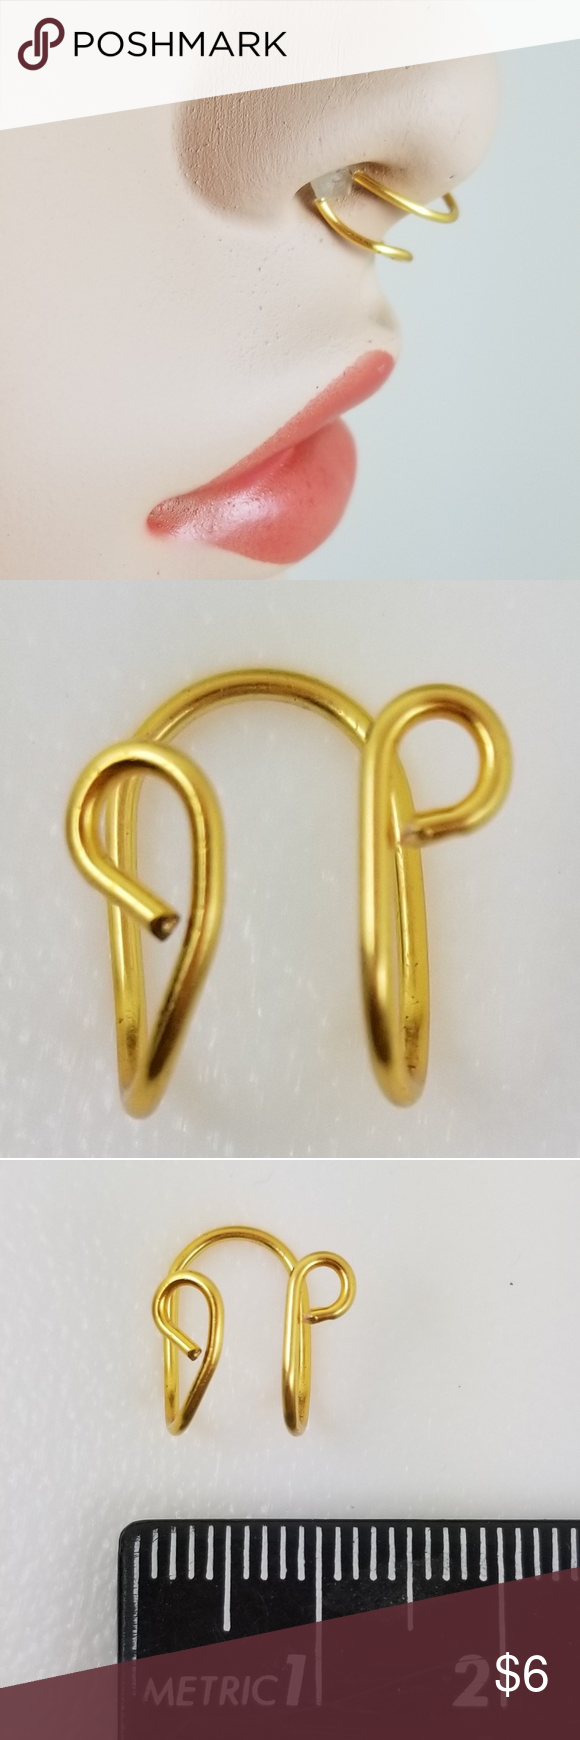 Fake Septum Gold Double Nose Ring Handmade This is a faux septum nose ring that looks like a set of double rings, but is actually one piece. Gold tone wire. No body piercing required. Handmade and new.   101819   567d Jewelry Rings #doublenosepiercing